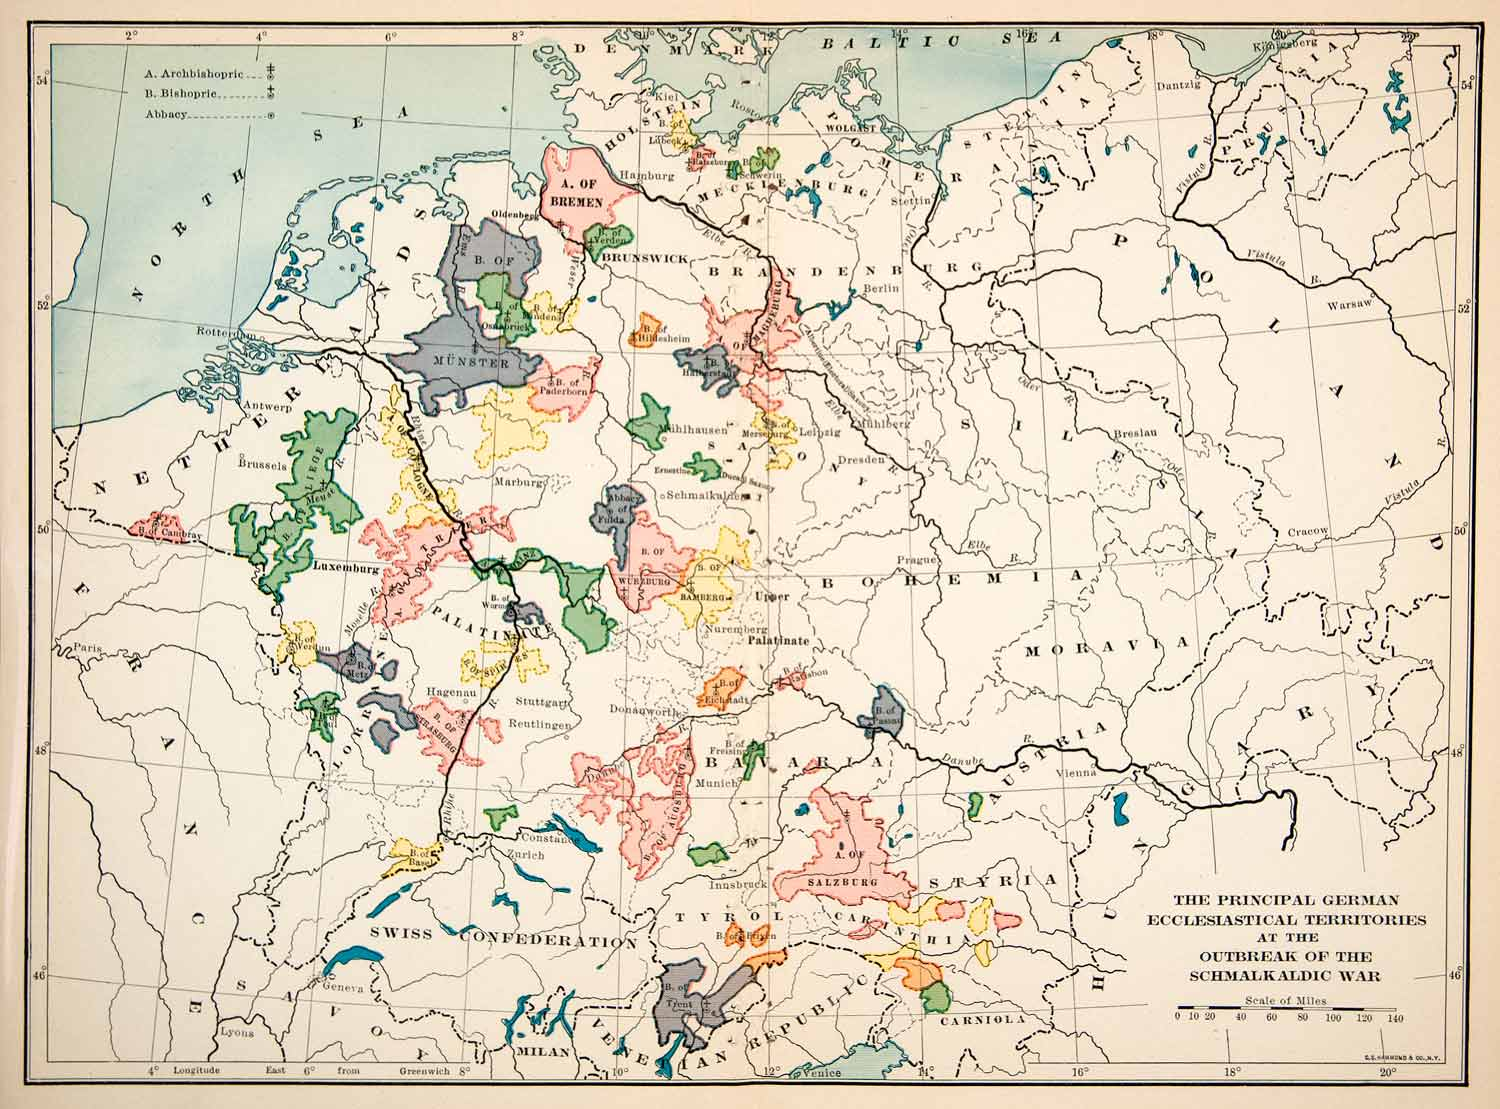 Map Of Germany To Print.1915 Print Map Germany Ecclesiastical Territories Schmalkaldic Wars Bremen Xep8